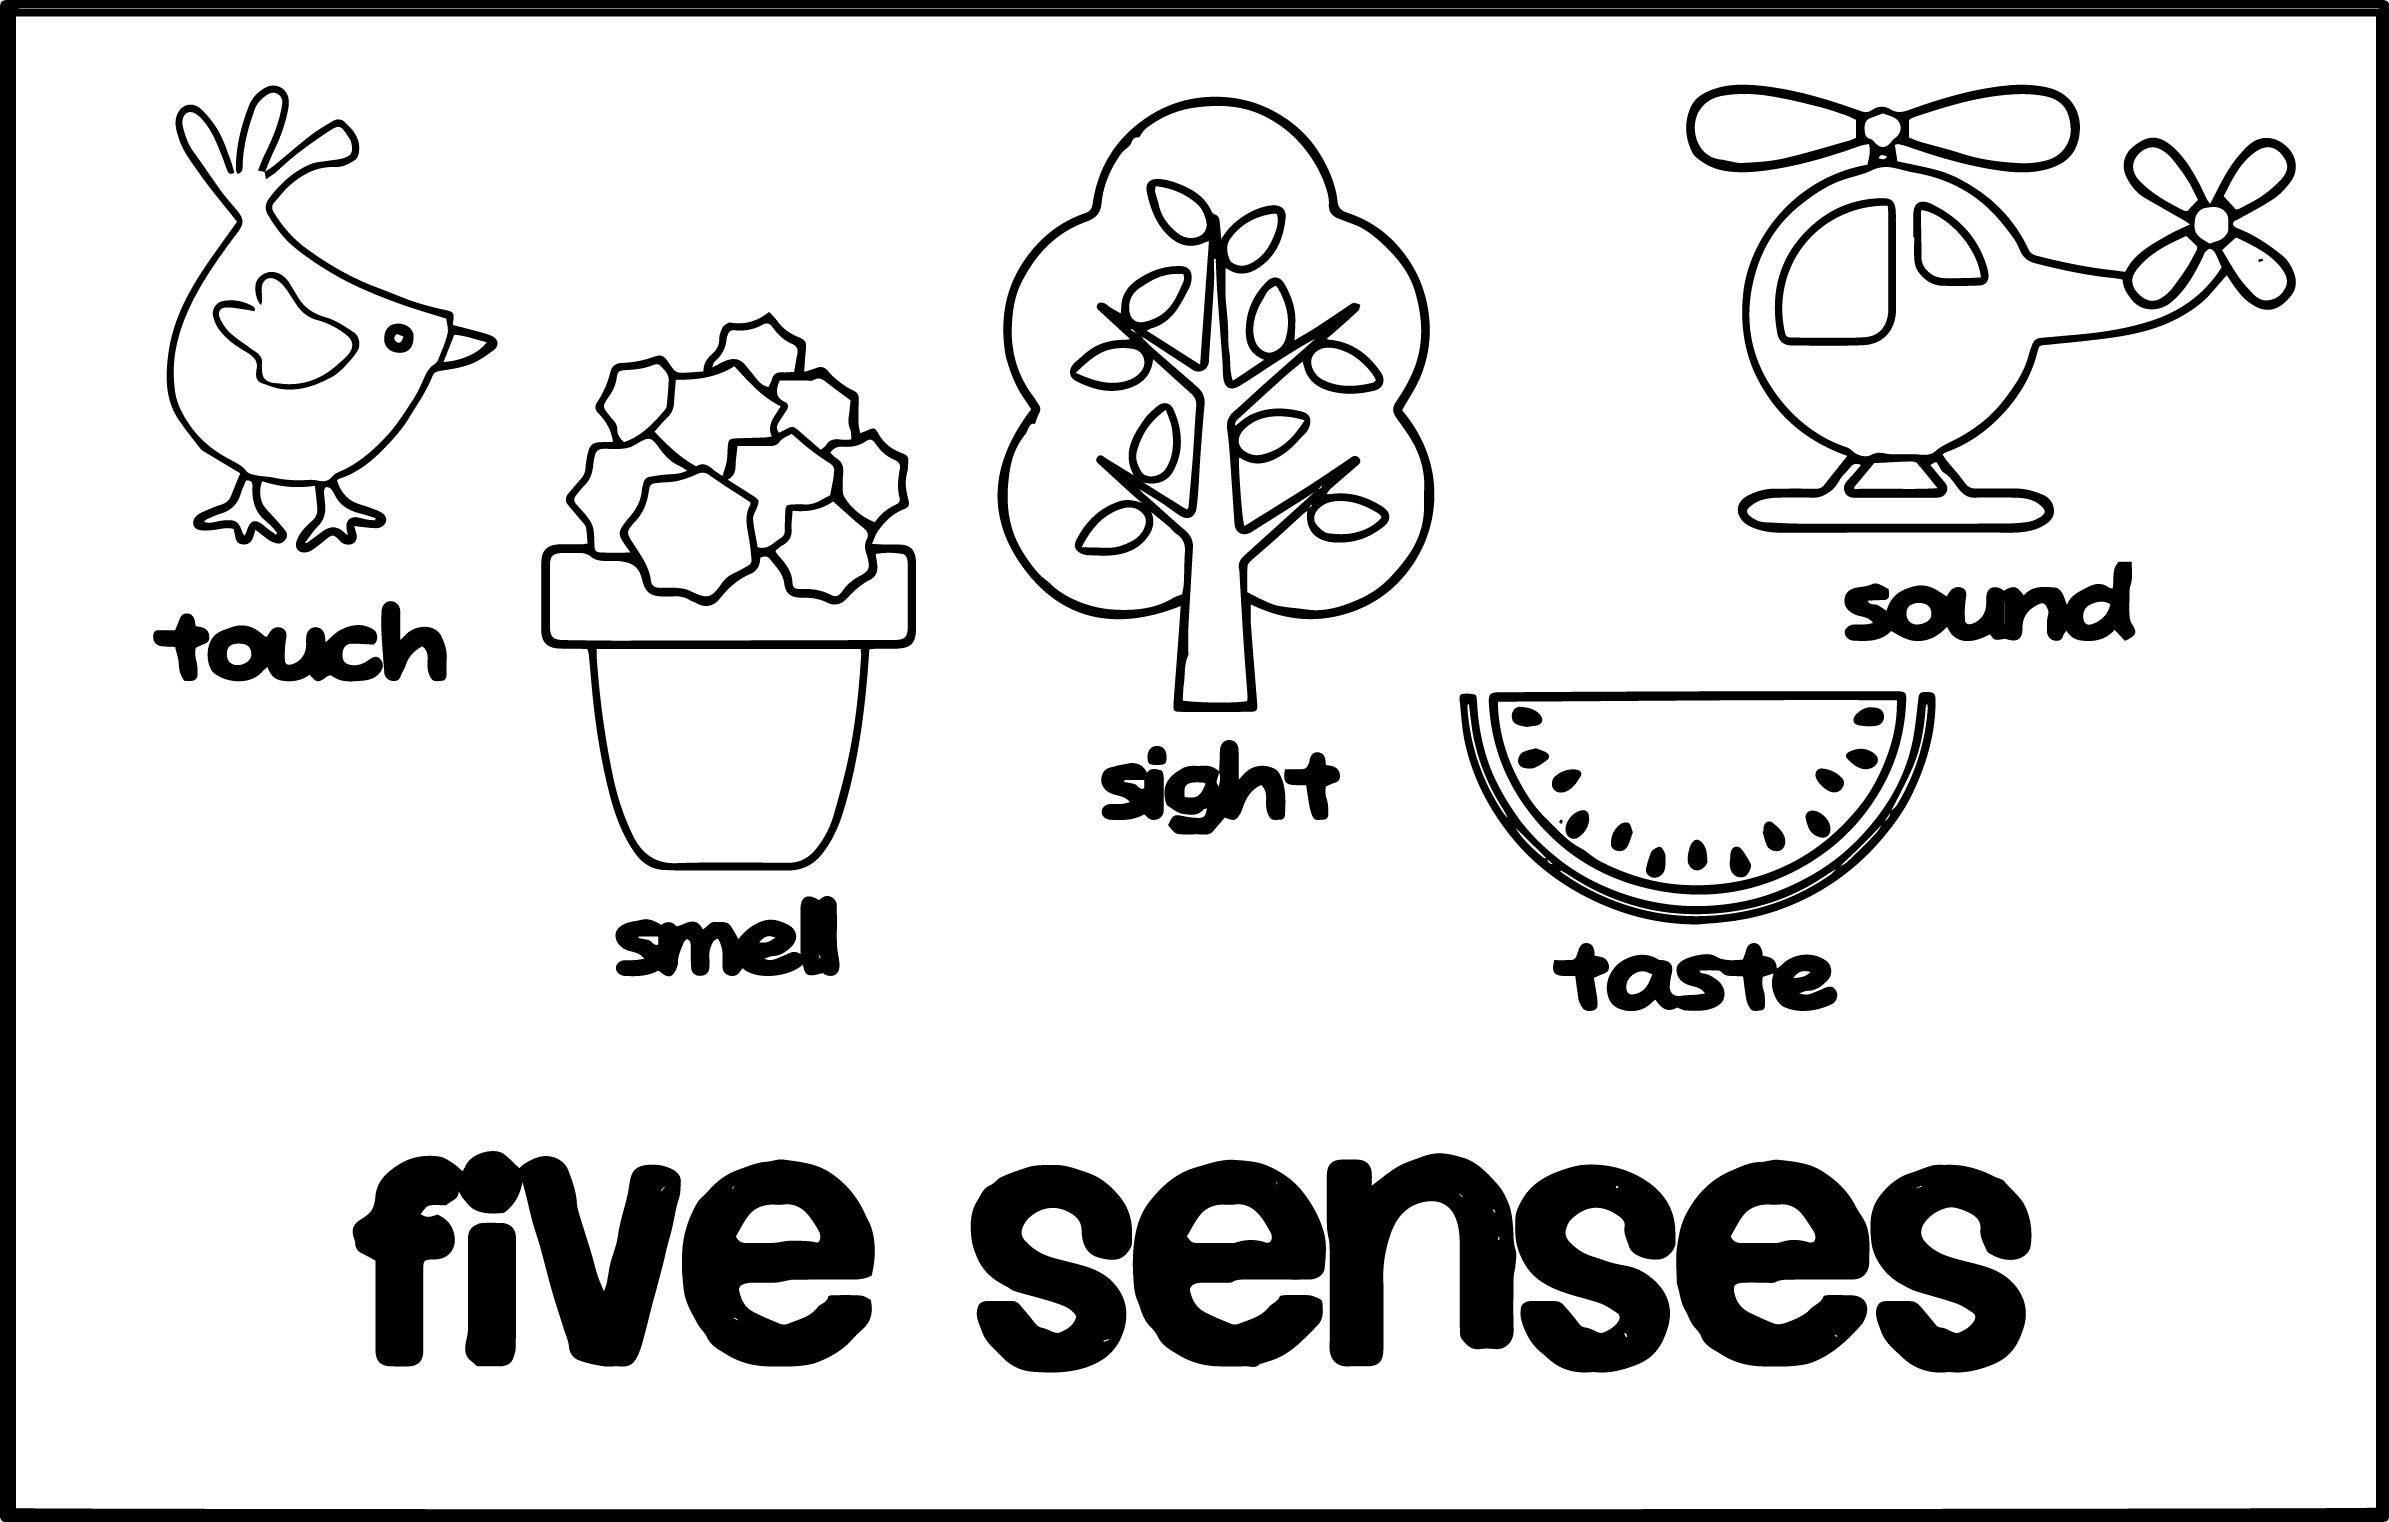 5 Senses Coloring Pages Sketch Coloring Page